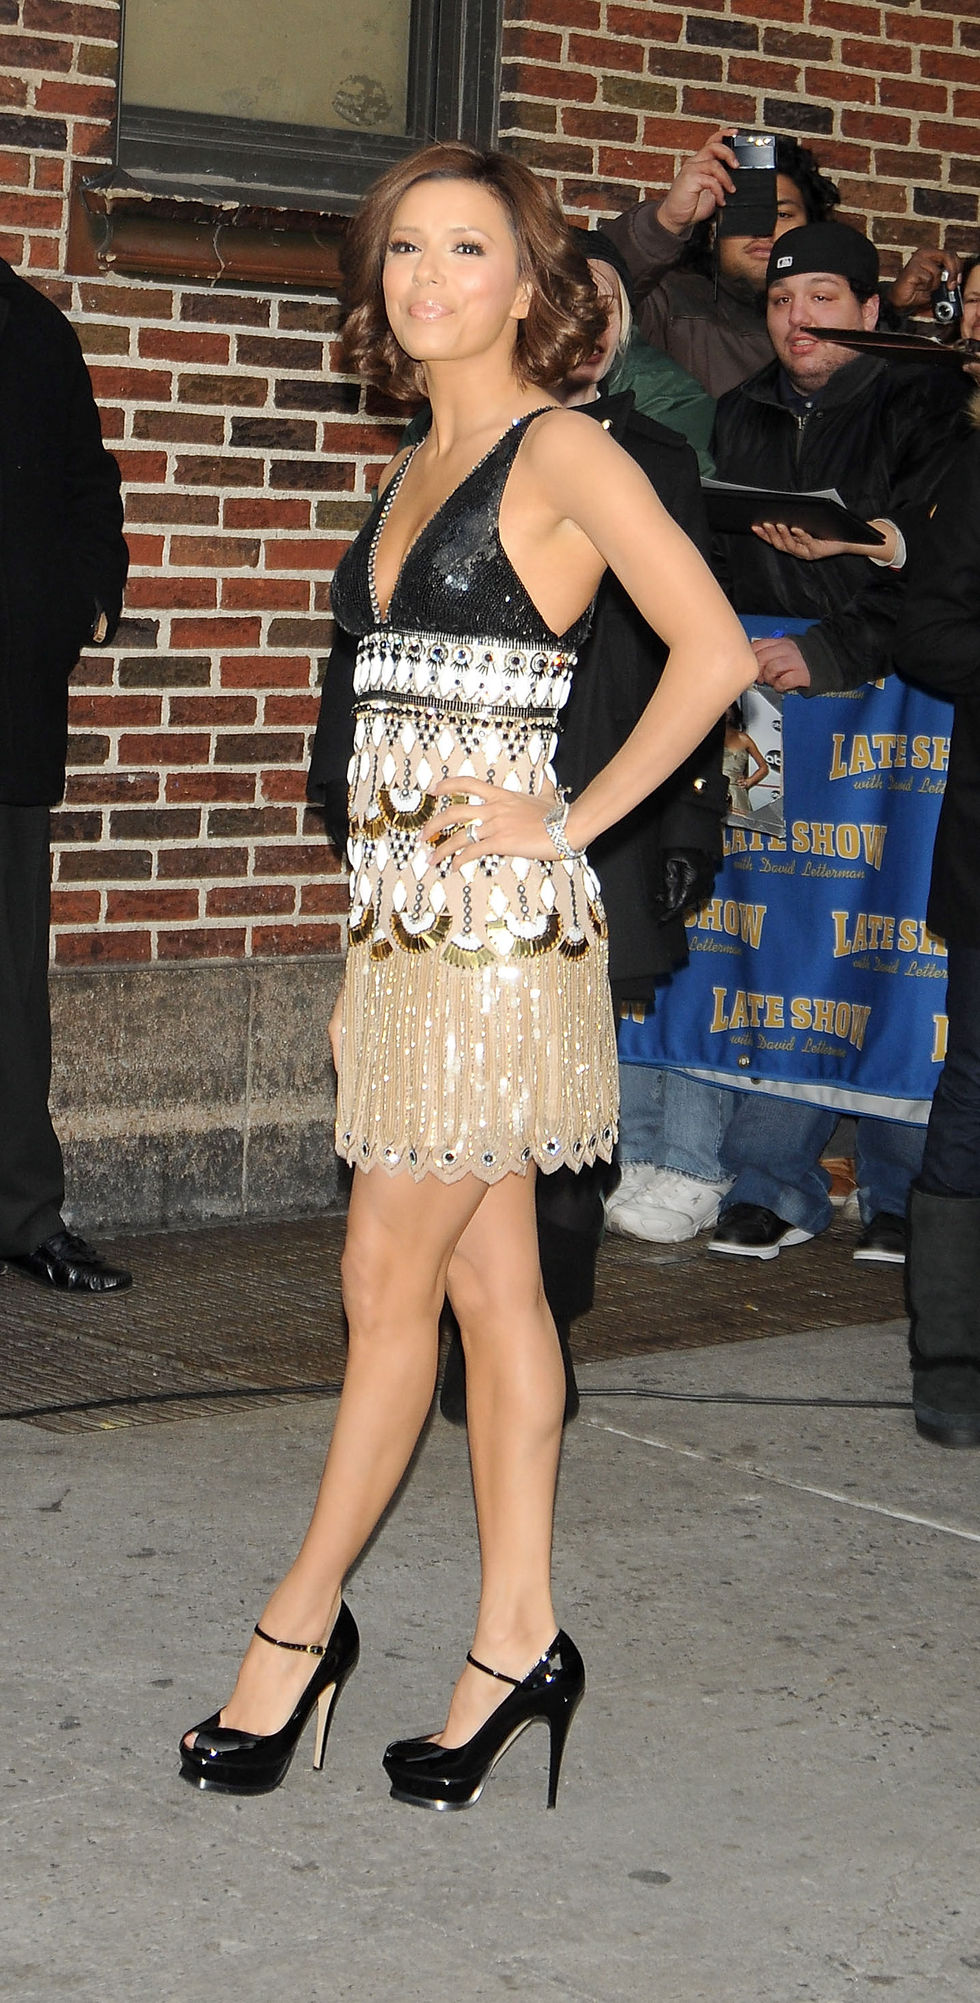 eva-longoria-at-the-the-late-show-with-david-letterman-in-new-york-city-01